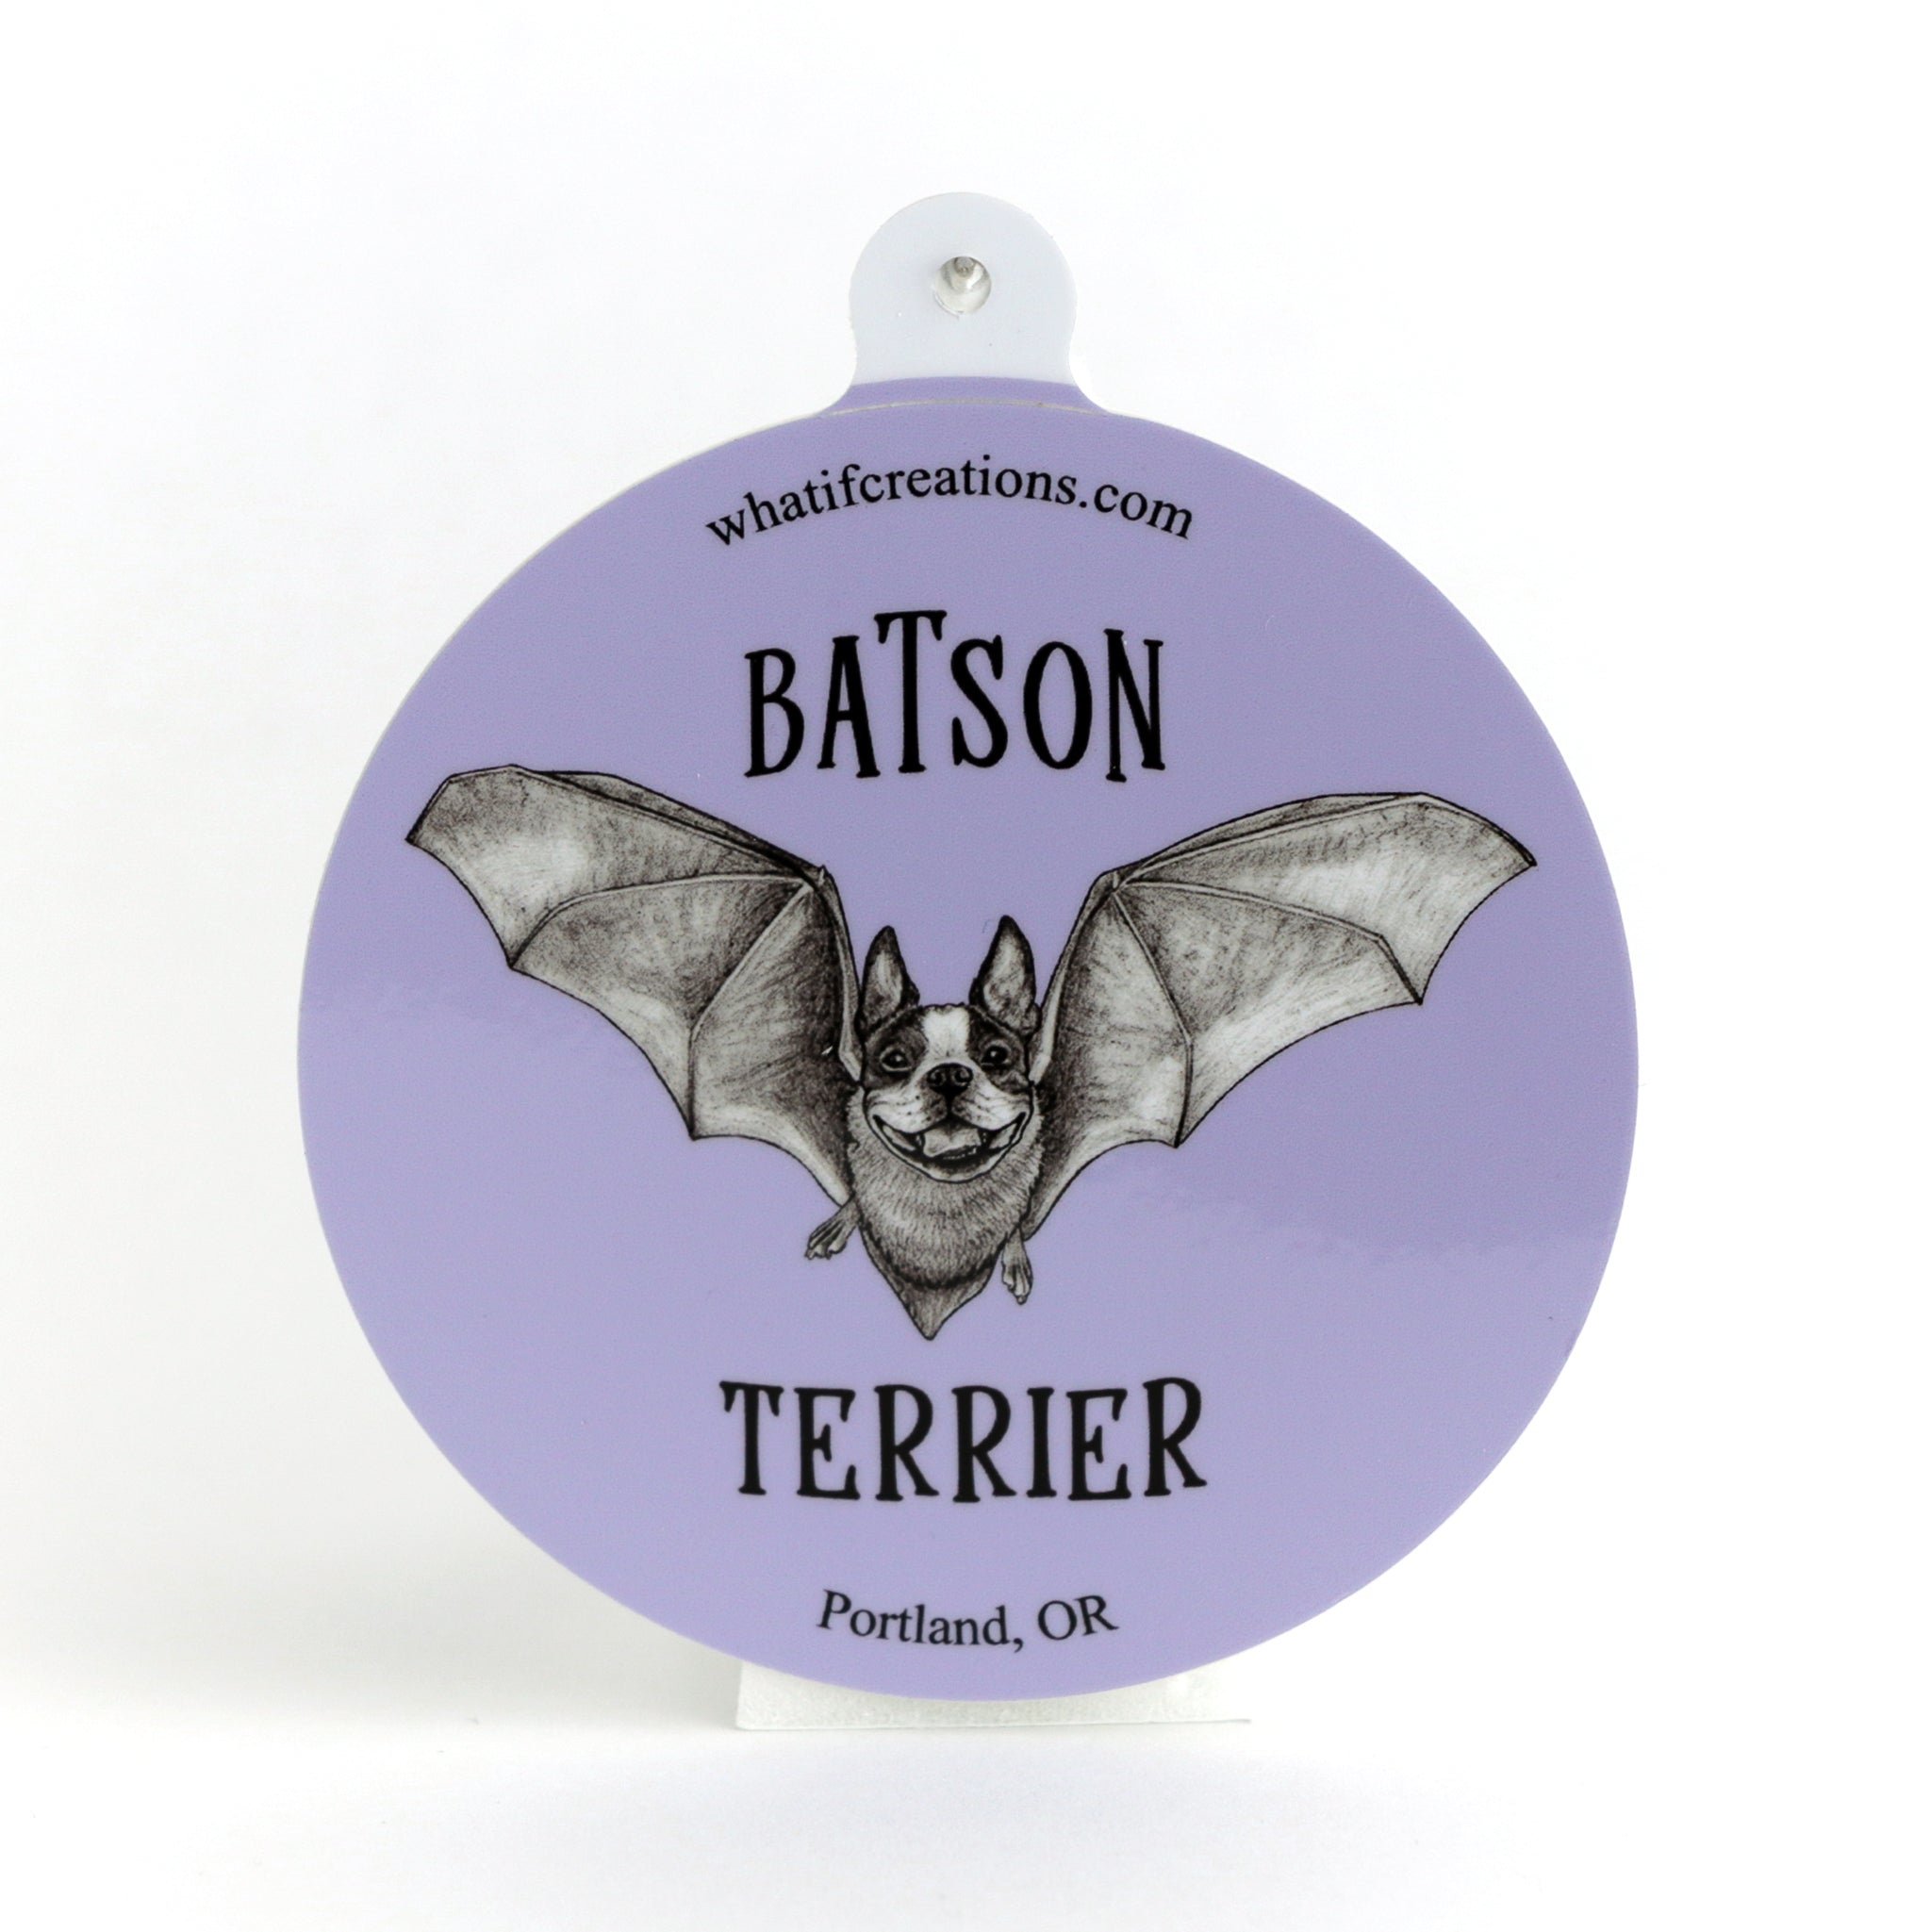 "Batson Terrier 3"" Vinyl Sticker"